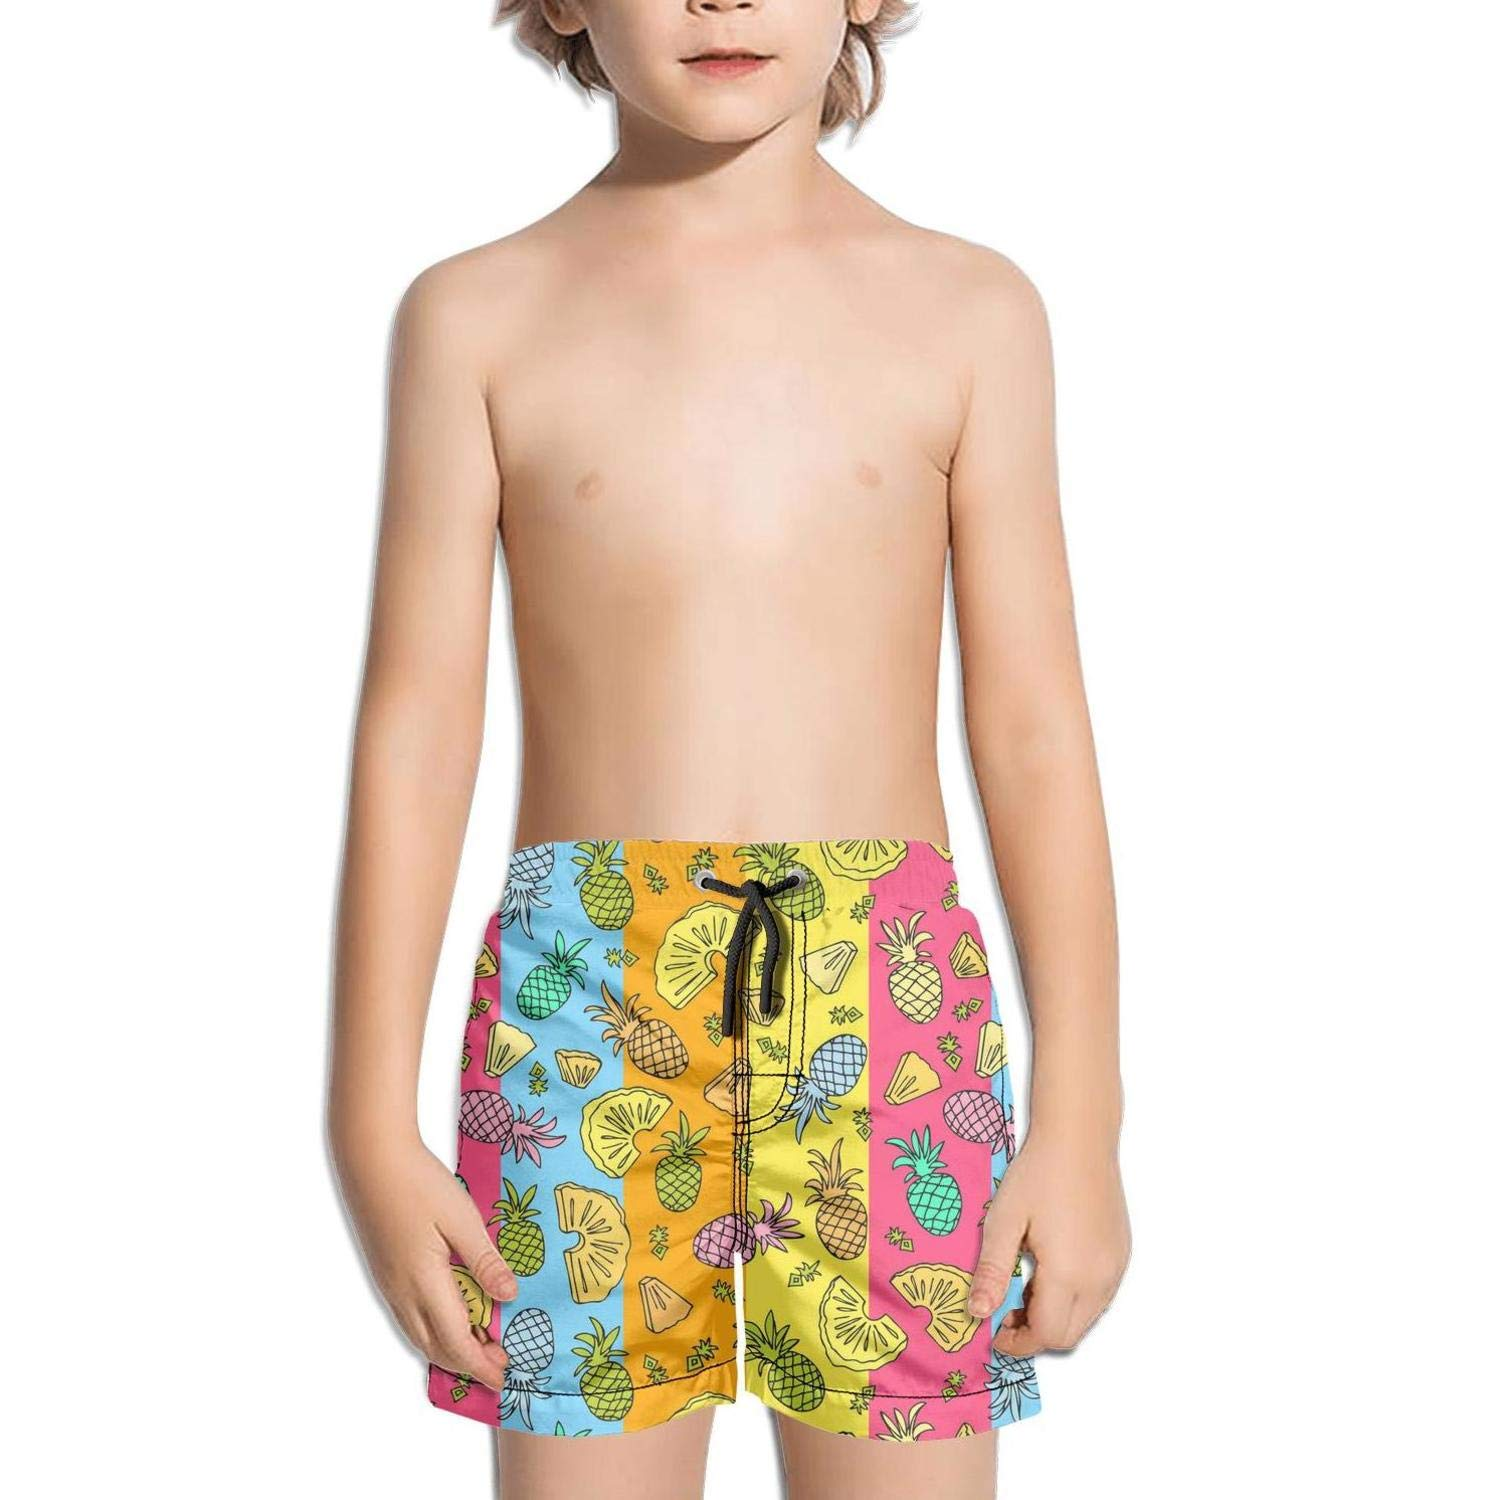 NAIT.2 Shorts Swim for Kid Quick Dry Solid Board Fully Lined Swim Mesh Lining Vacation Colorful Pineapple Fruit Stipes